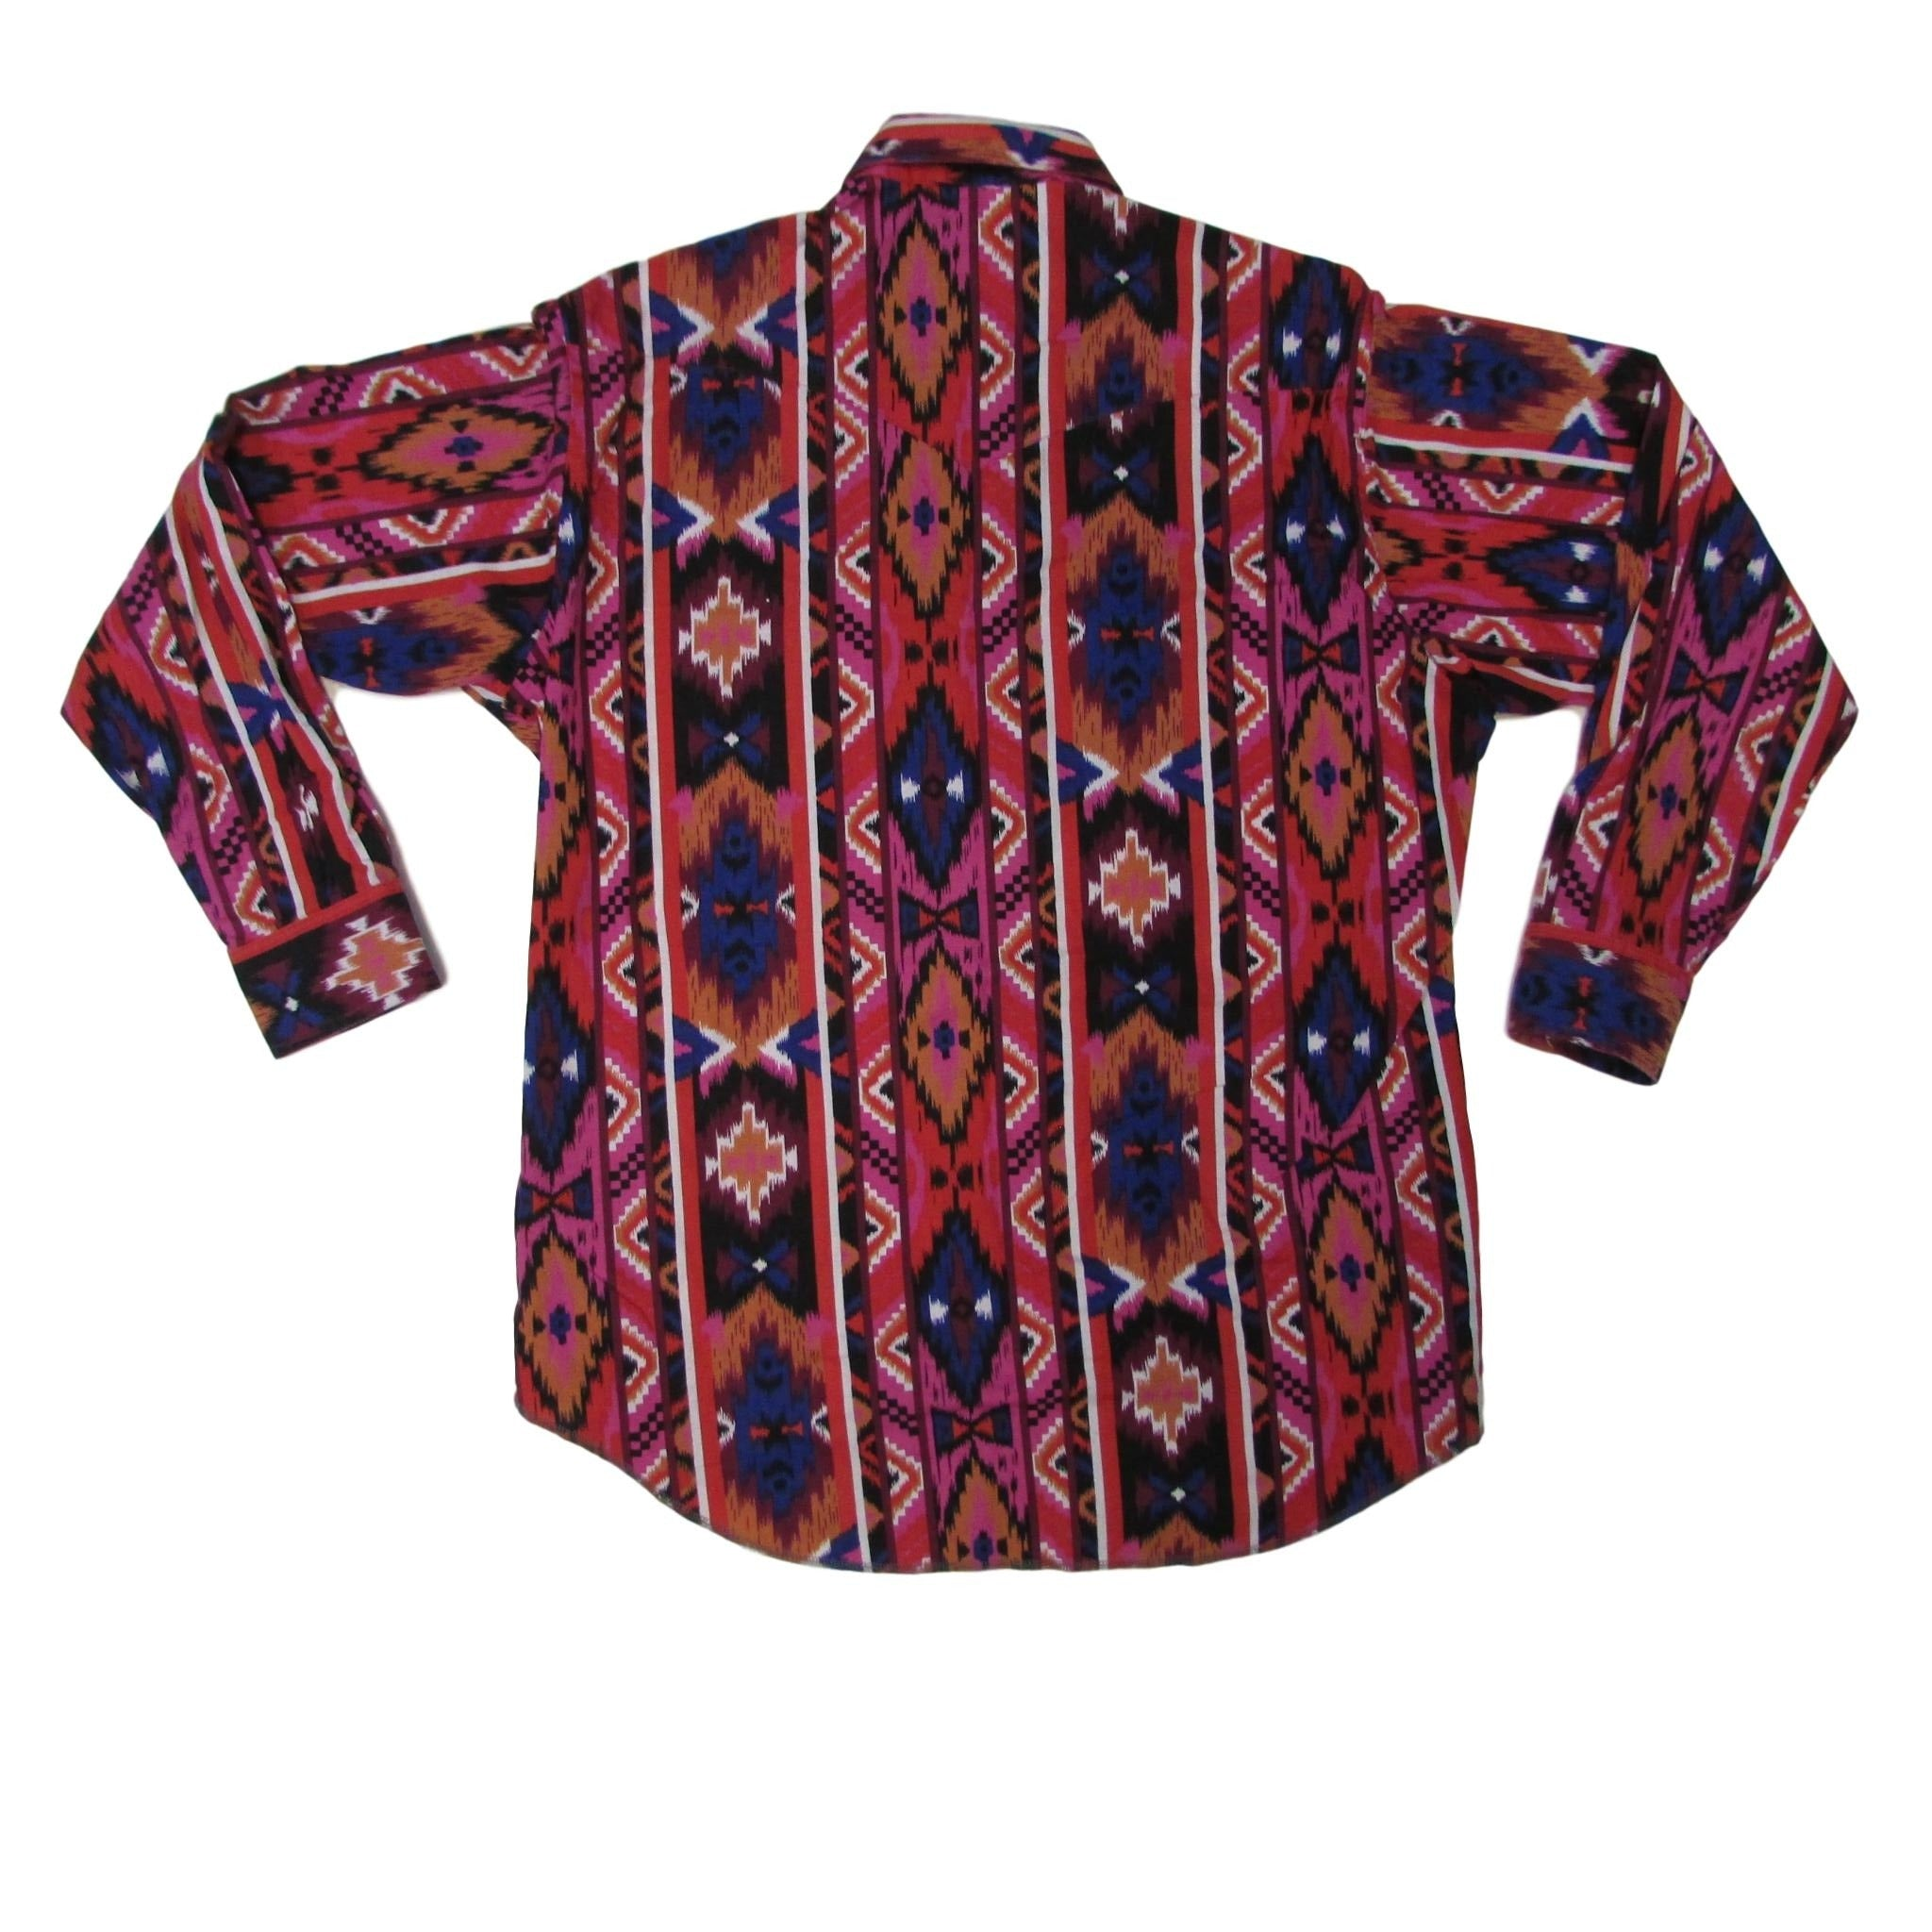 Wrangler Western Cowboy Long Sleeve Shirt w/ Tribal Print